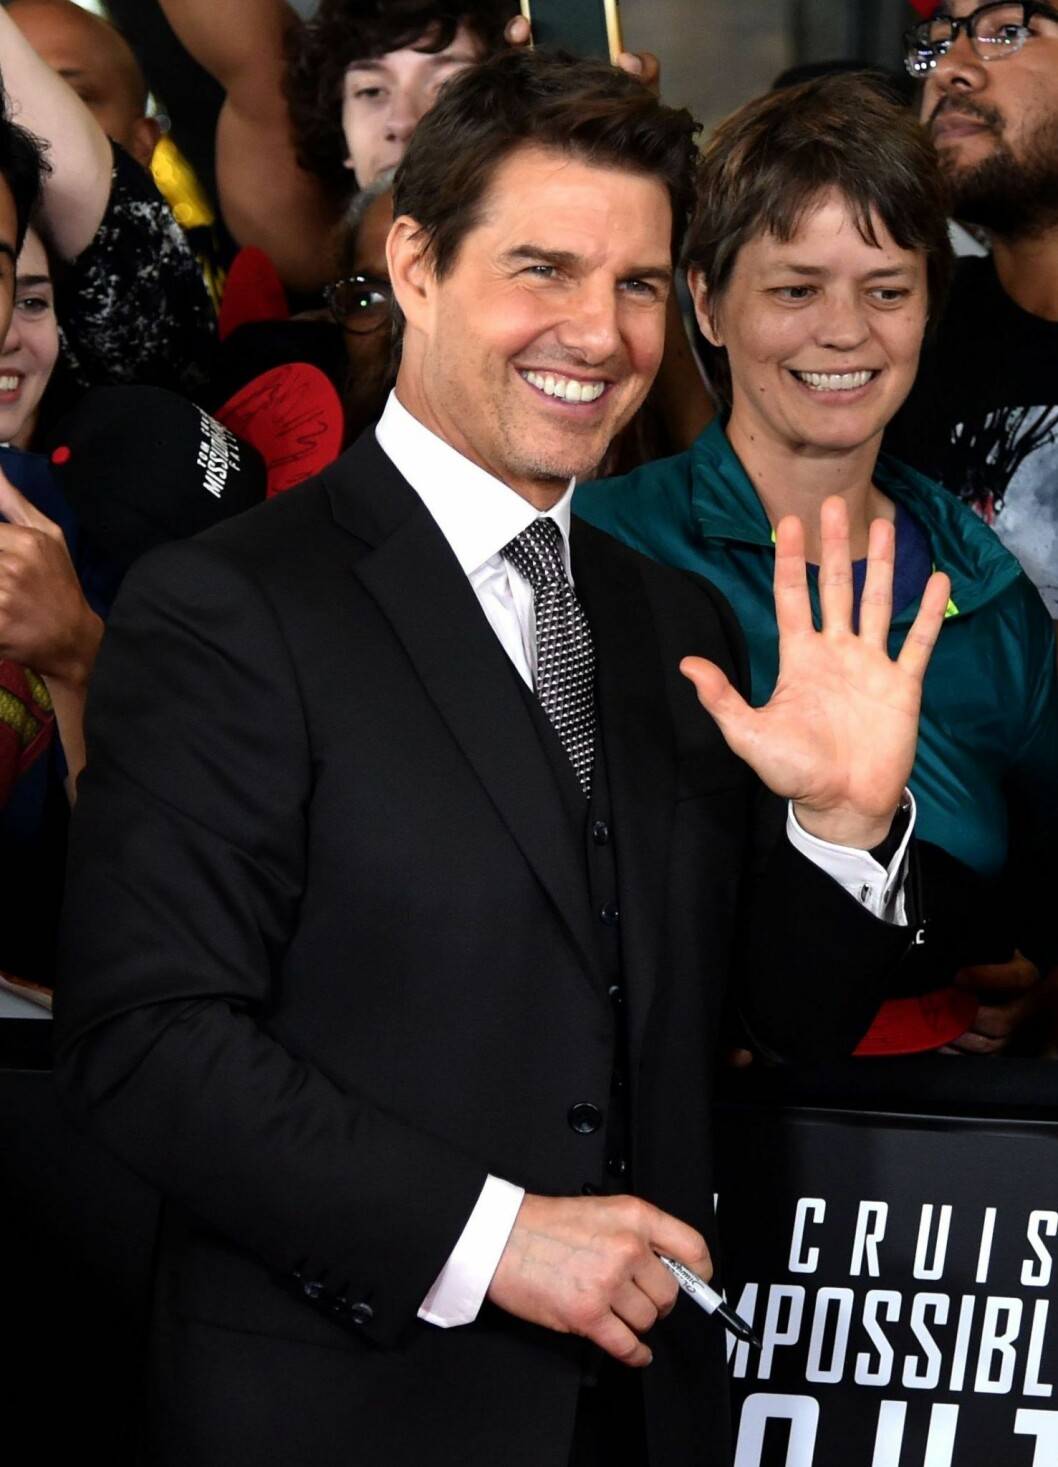 Tom Cruise vinkar